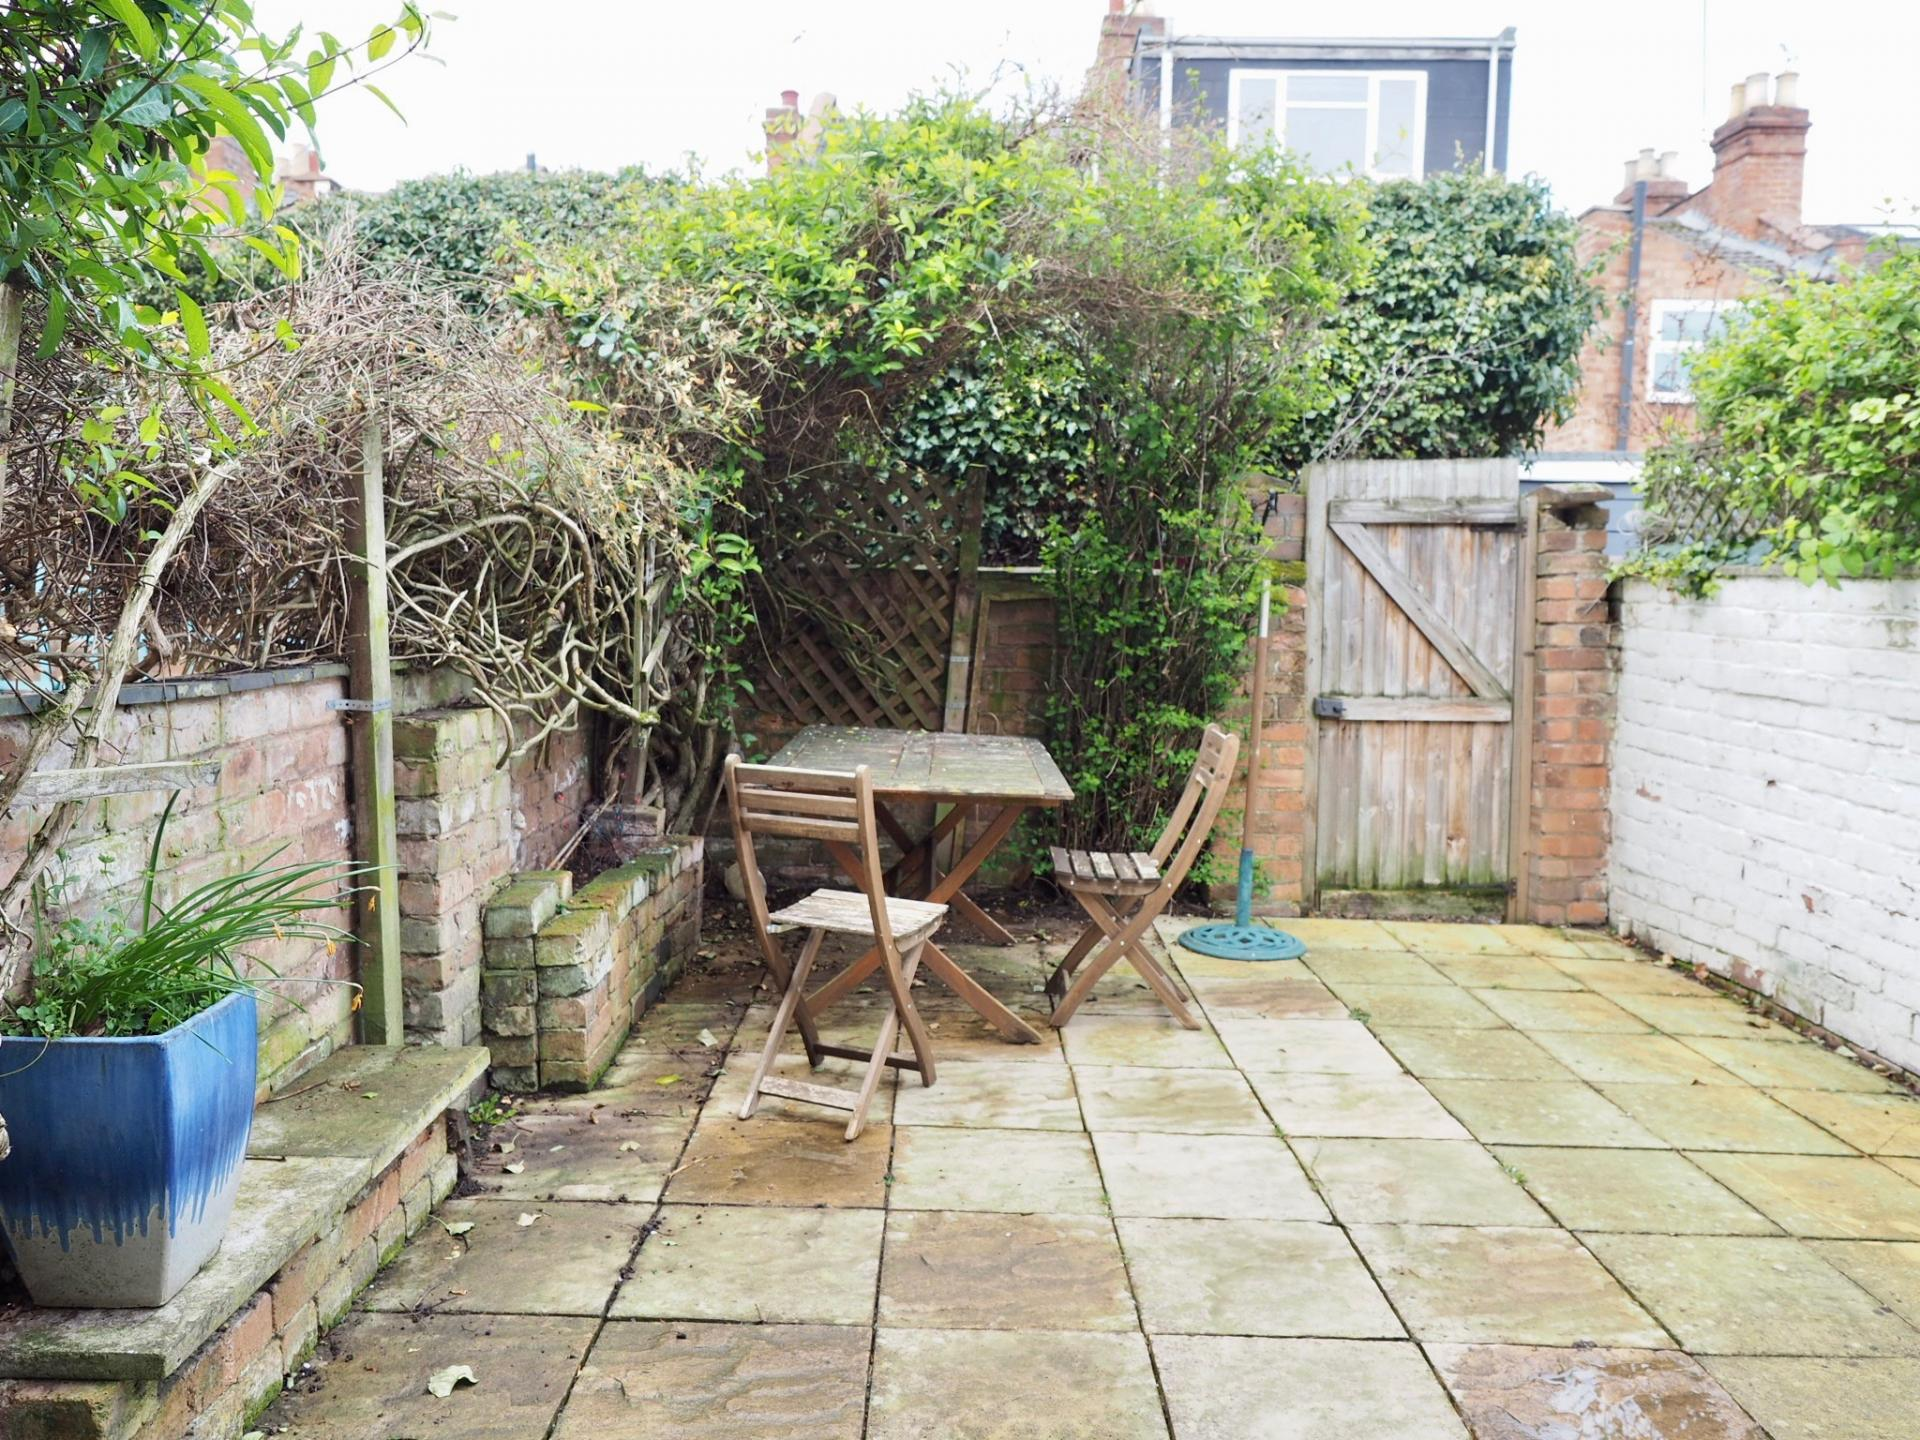 Patio at Gordon Street House, Centre, Leamington Spa